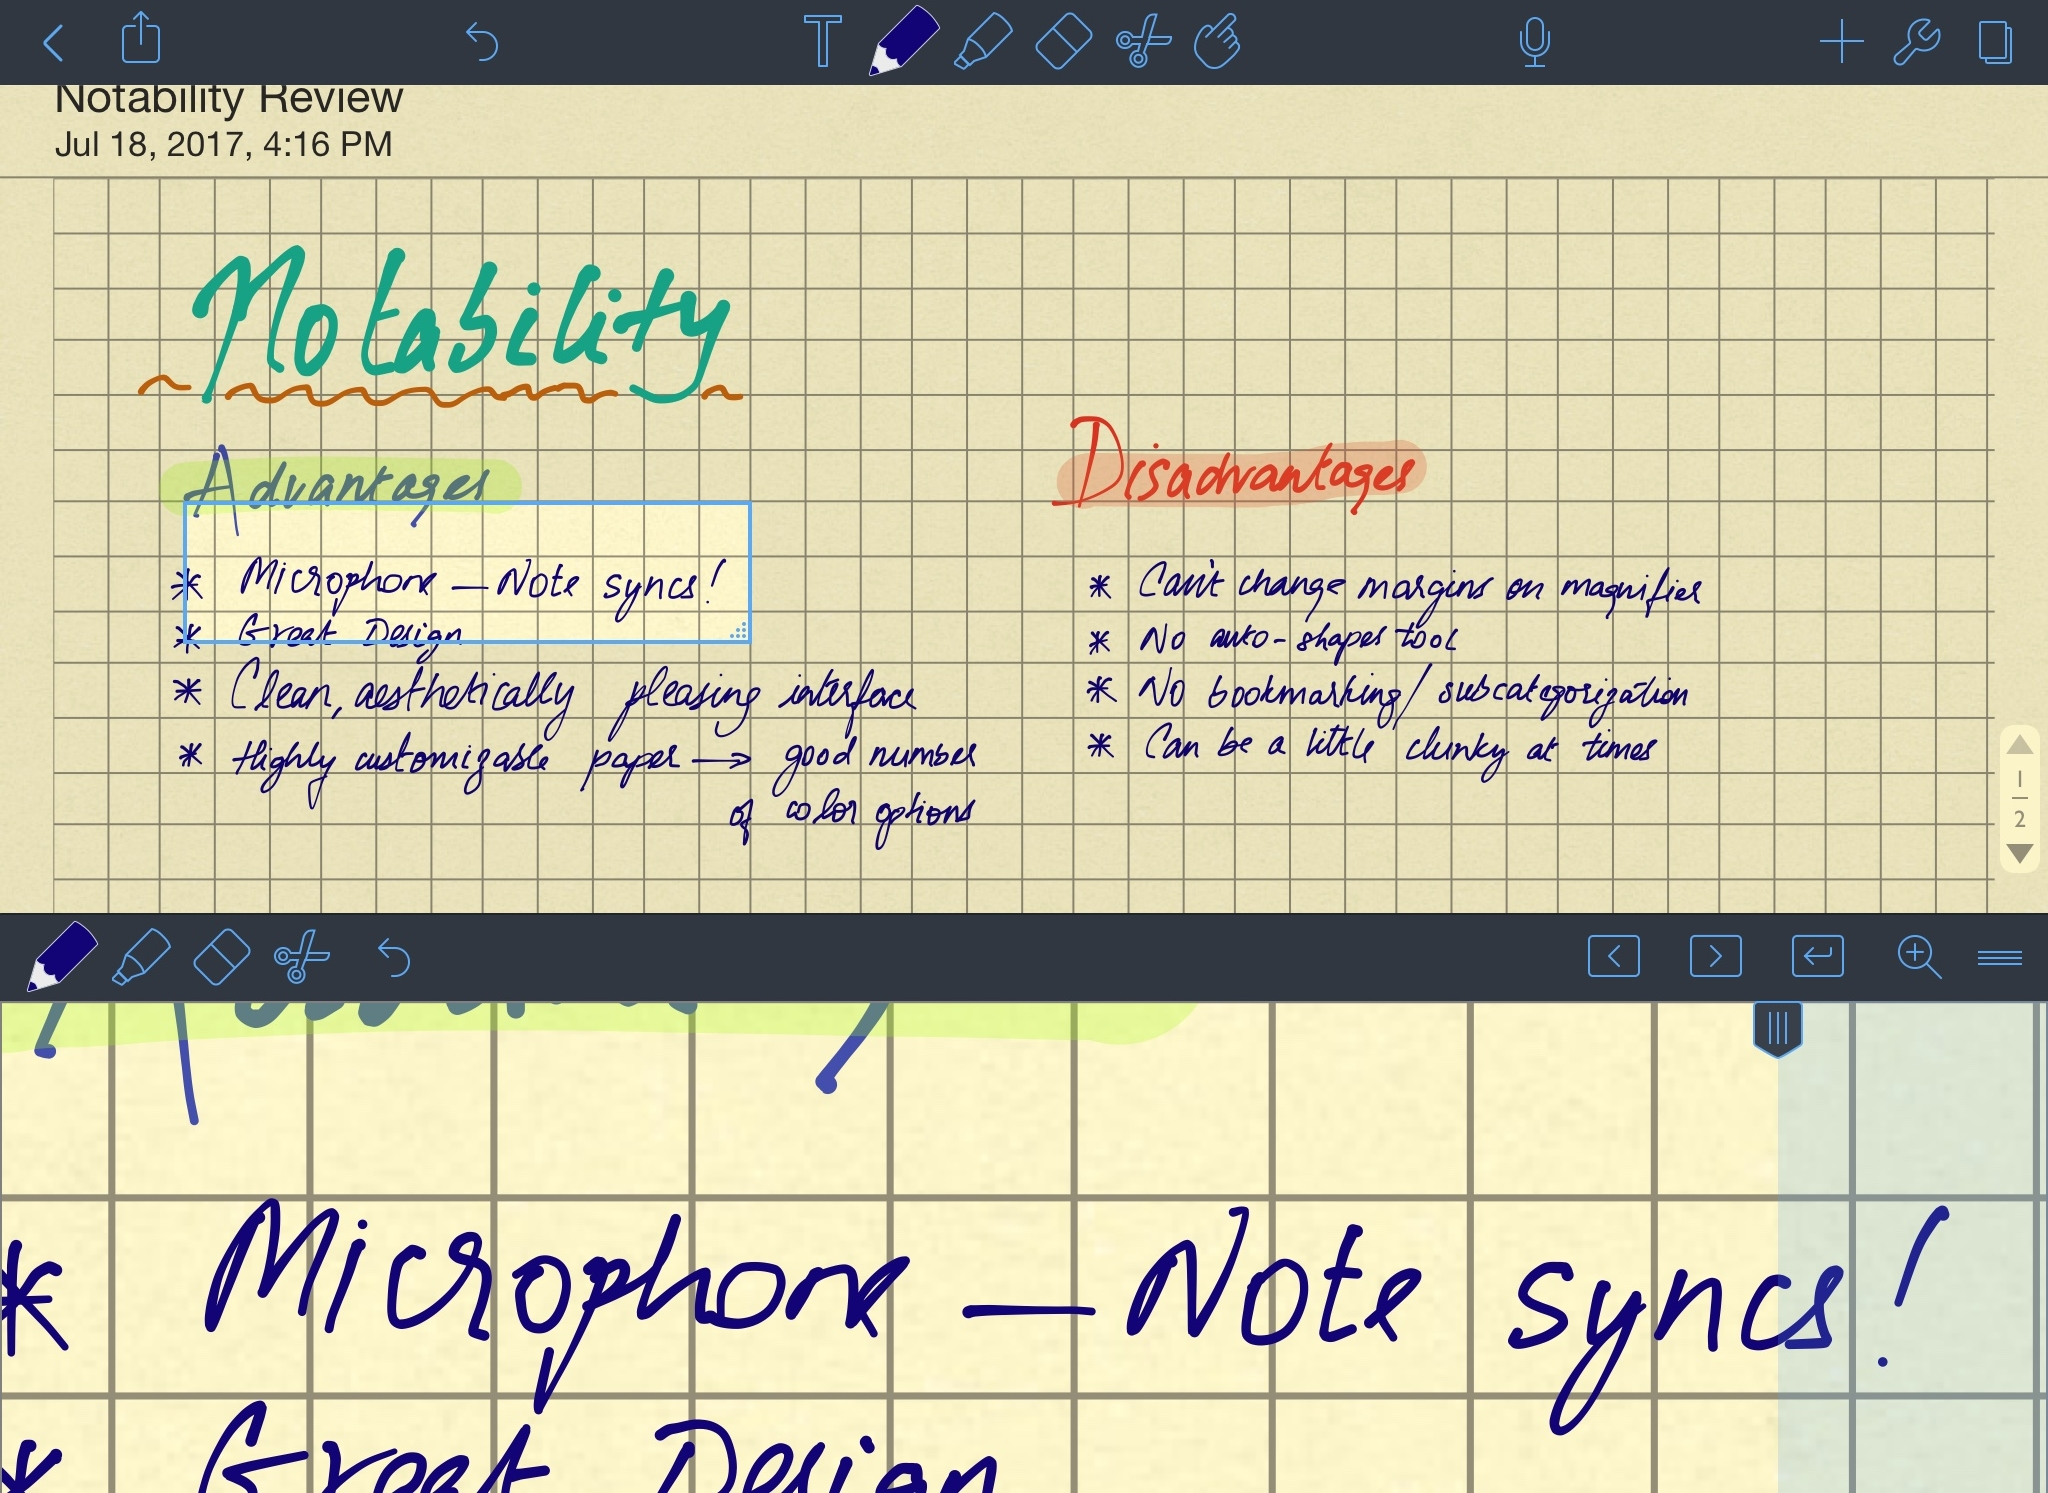 An example screenshot from Notability.